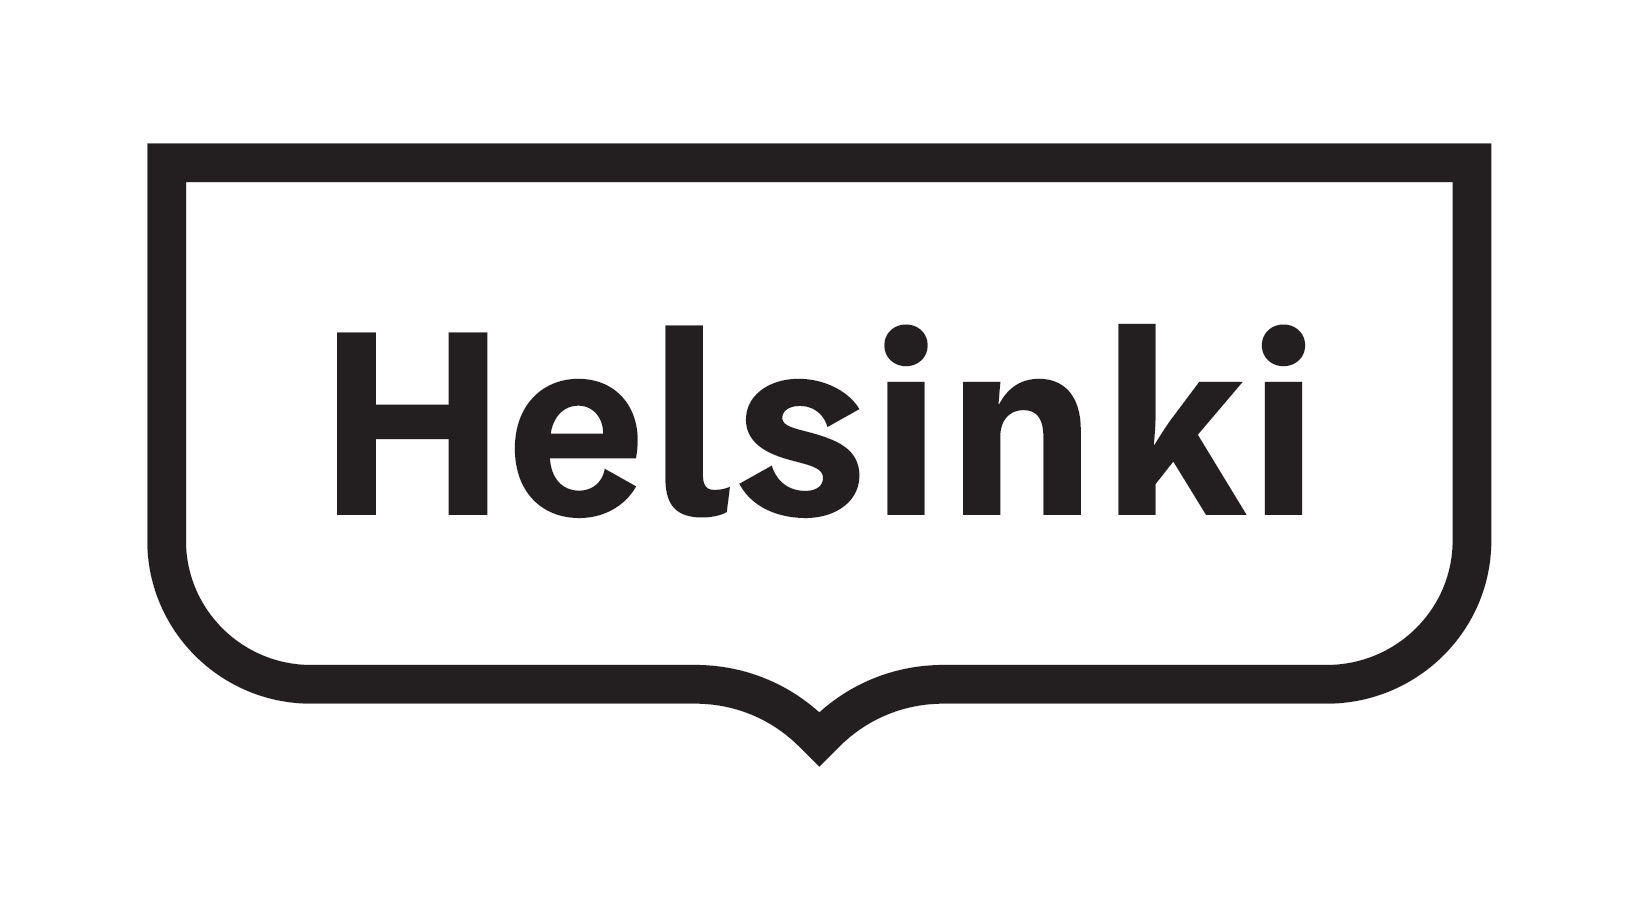 Logo the city of Helsinki